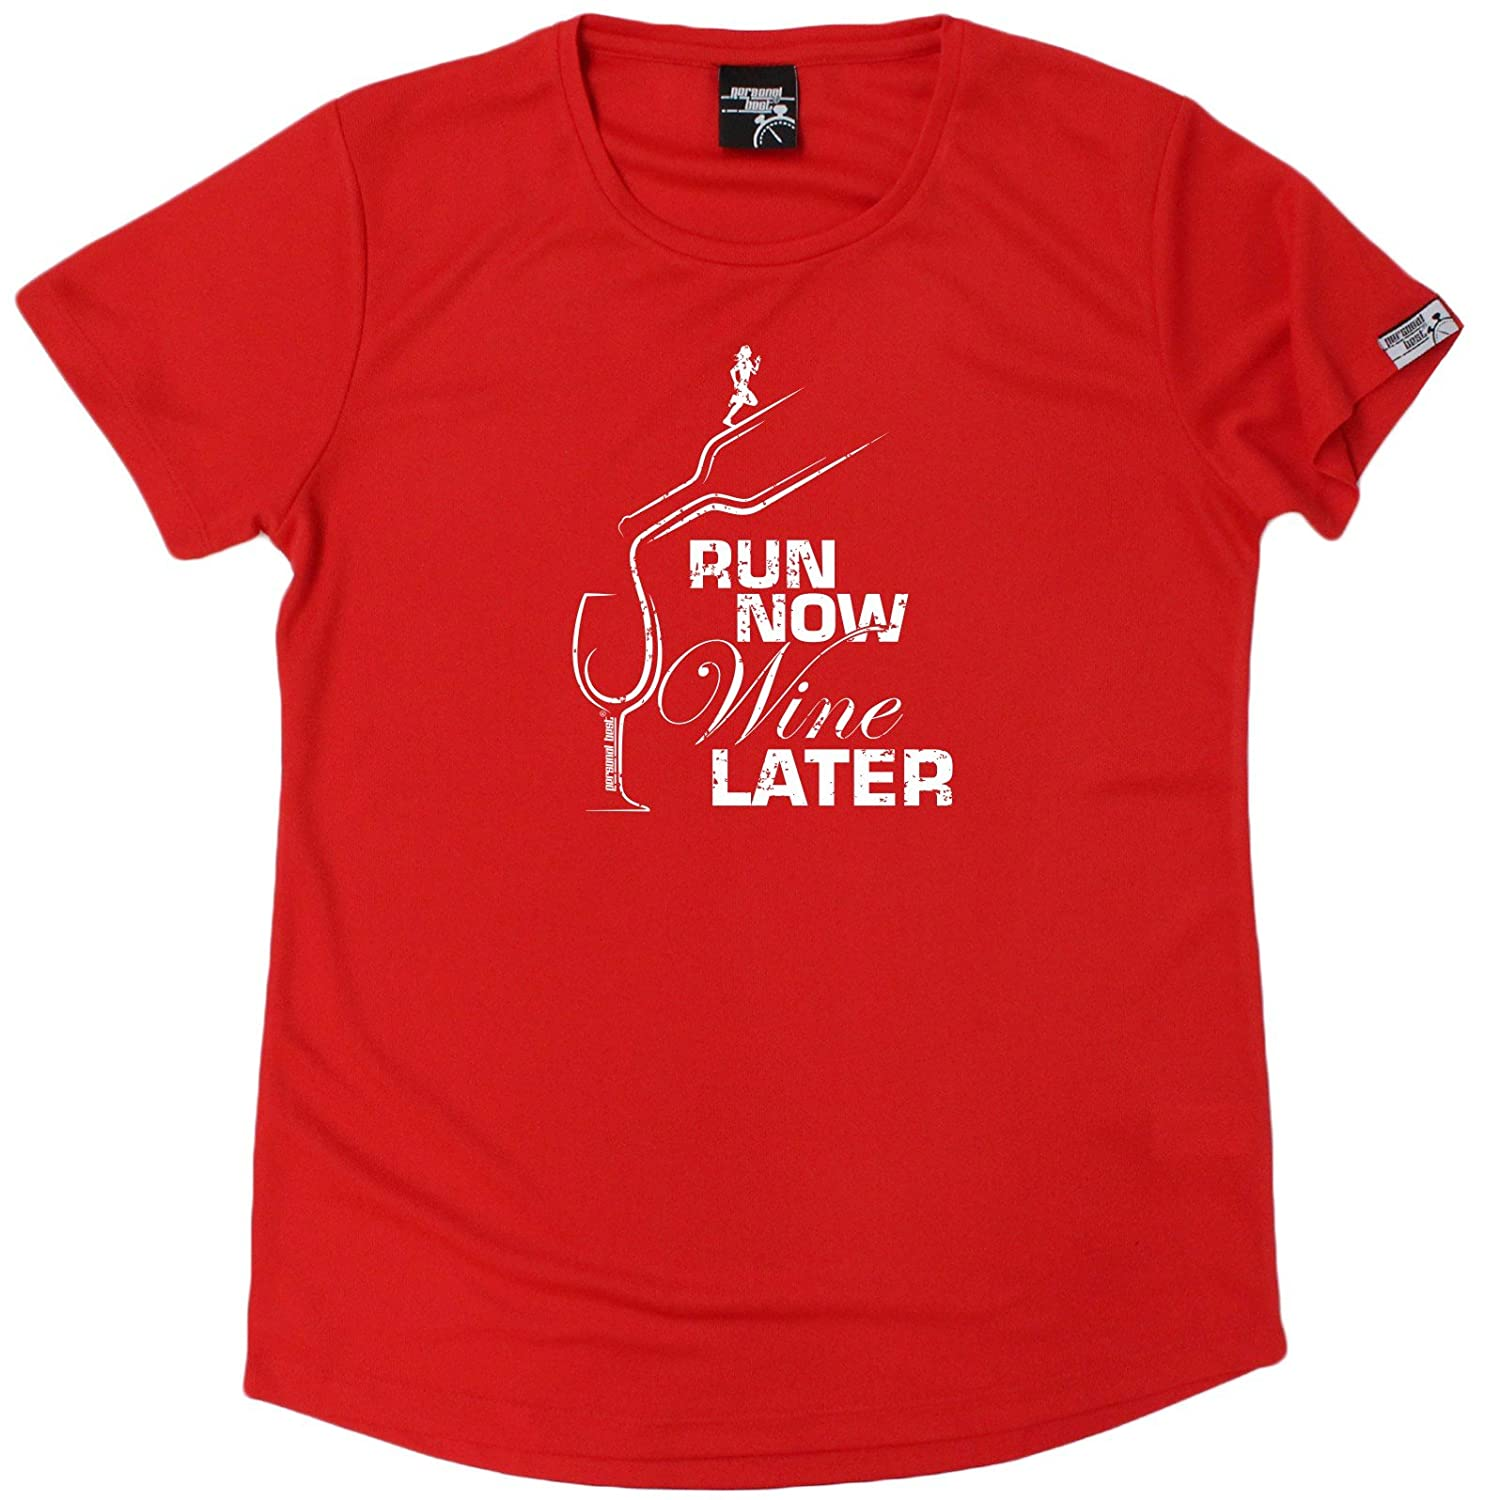 Personal Best Women's Run Now Wine Later - Premium Dry Fit Breathable Sports Round-Neck T-Shirt